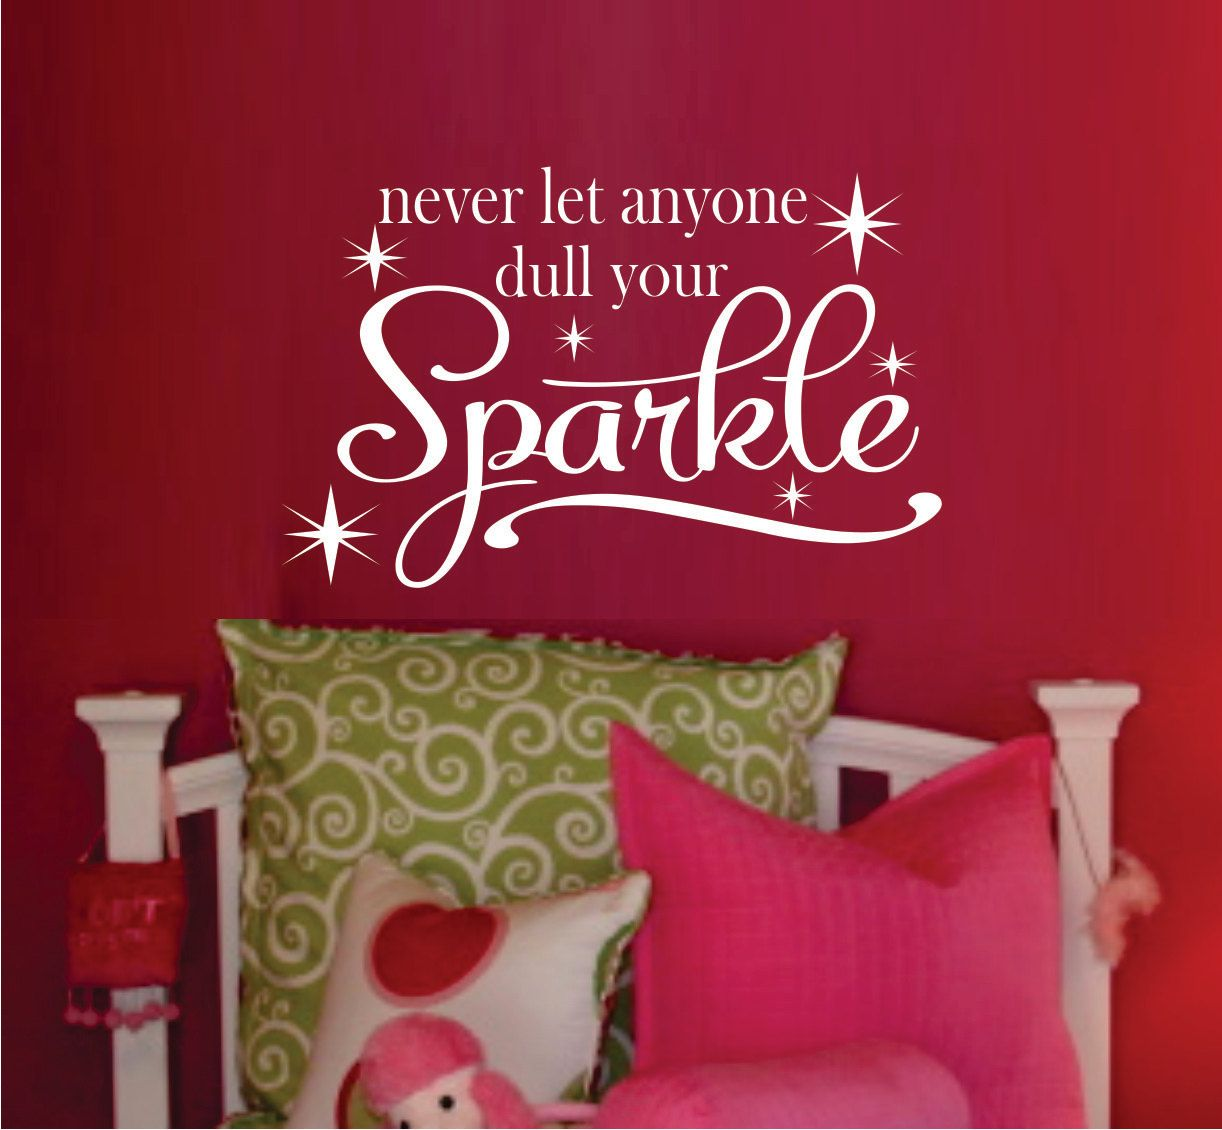 Marvelous Teen Girl Wall Decal   Bedroom Vinyl Wall Decal   Bathroom Vinyl Wall Art  Decal   Vinyl Lettering From Just The Frosting. Saved To Decal. Part 5